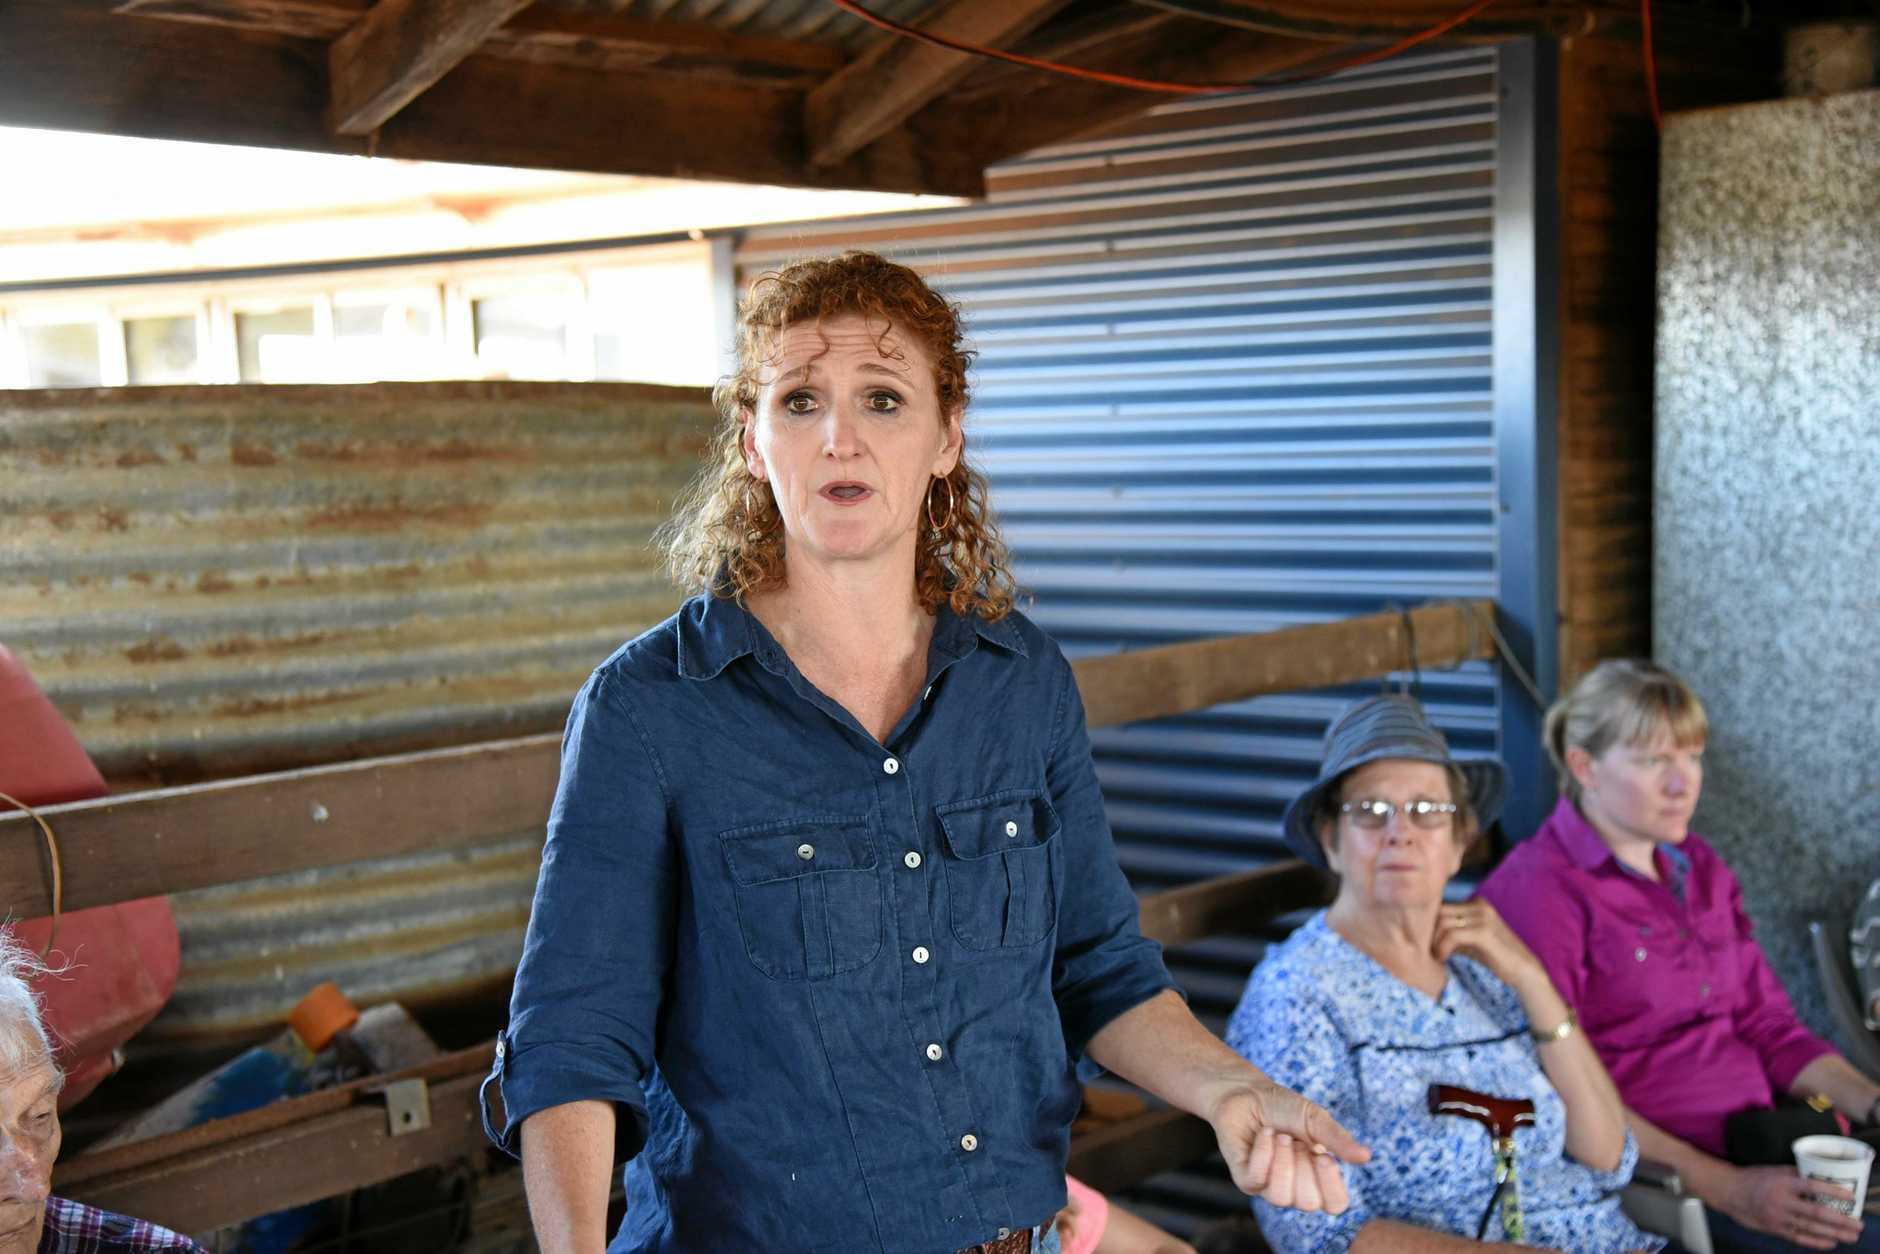 Cafe owner Judy Plath at the Nourish Cafe Bundaberg tour of Happy Valley dairy farm in Coalstoun Lakes on October 4.